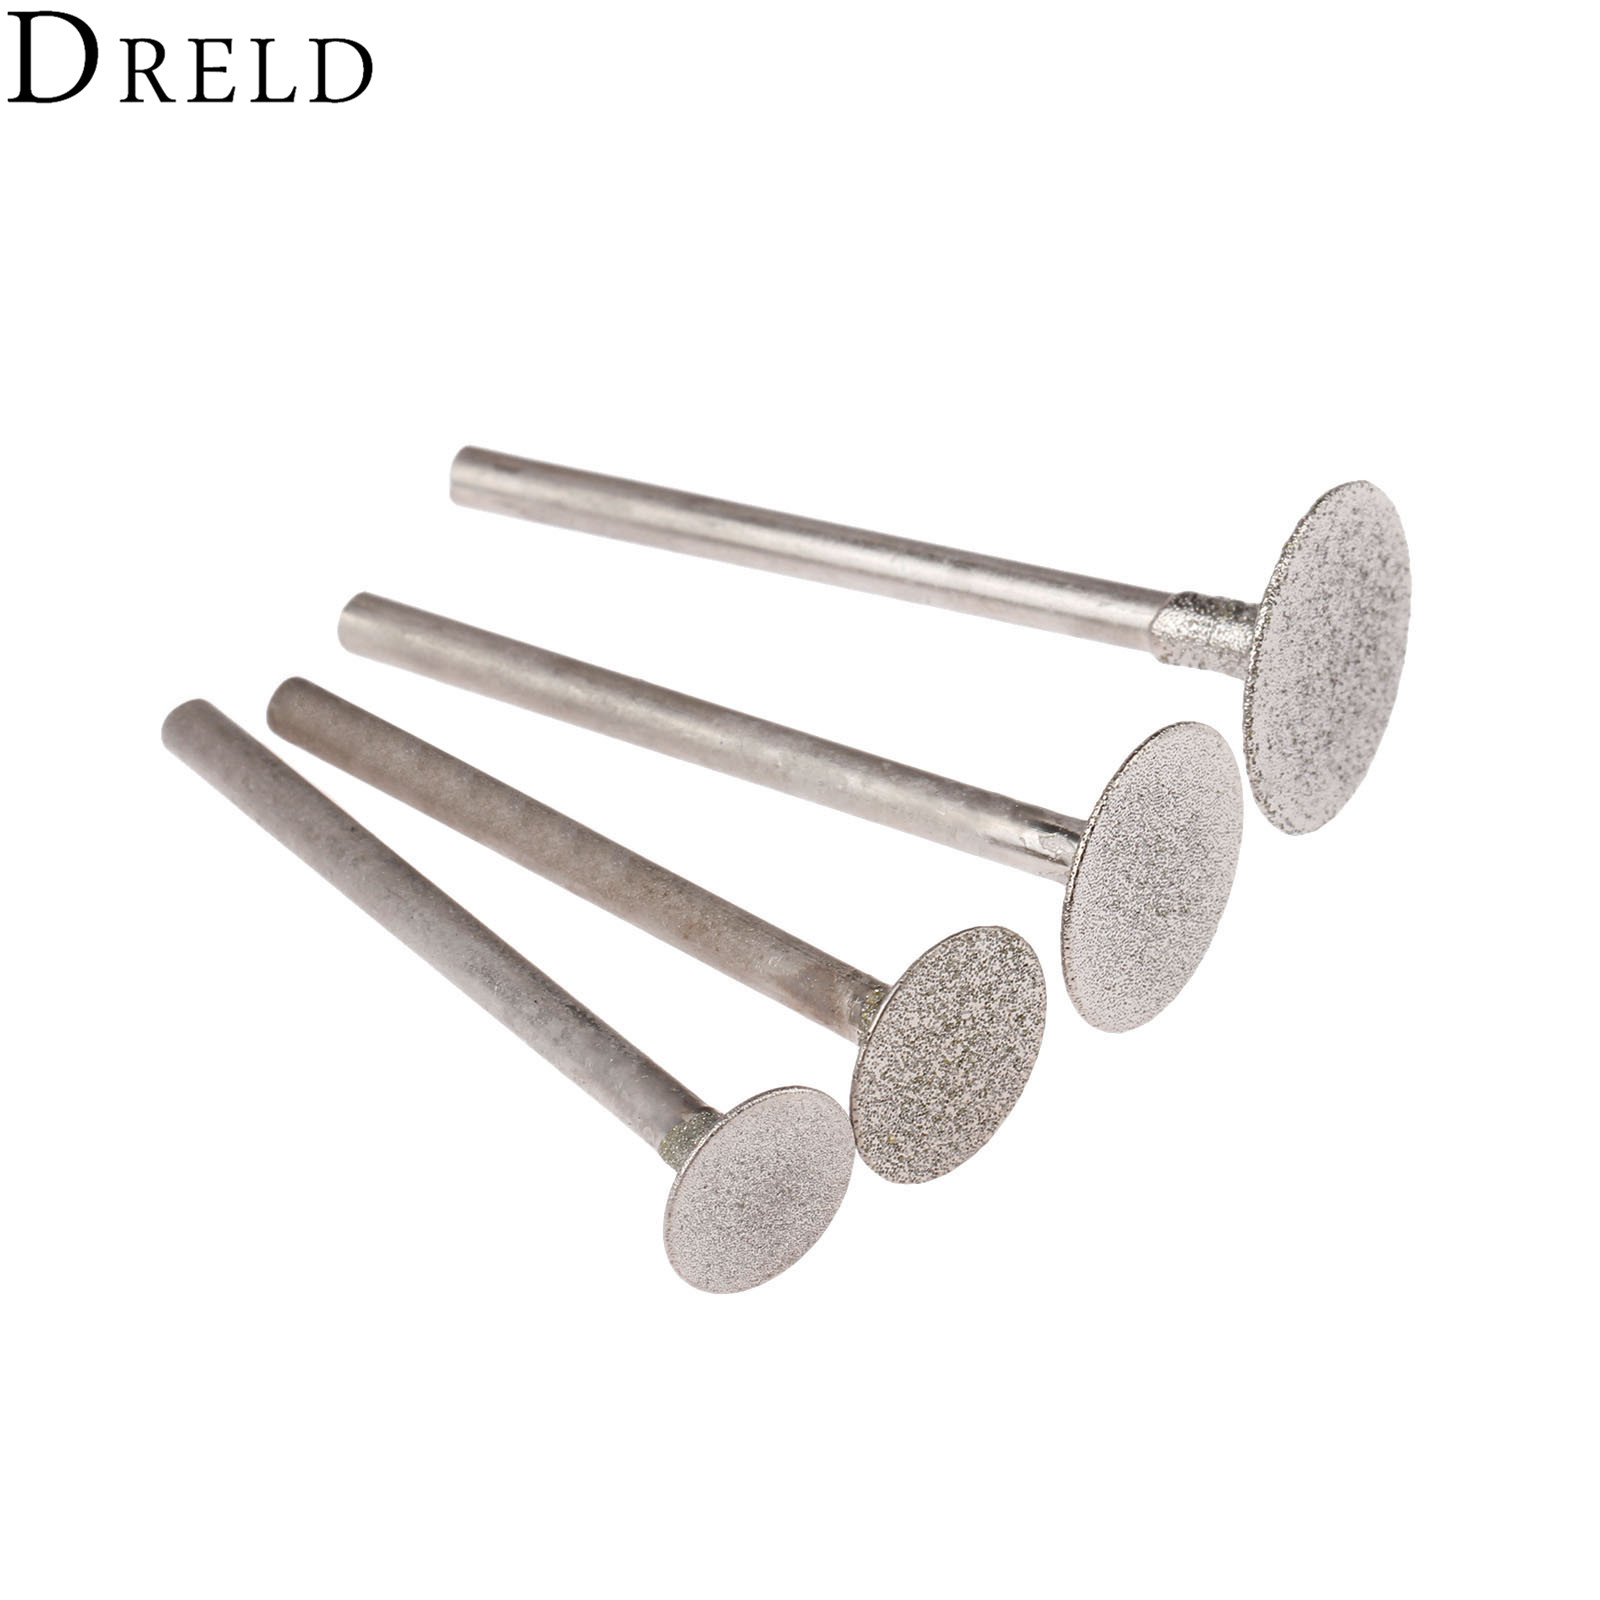 DRELD 4Pcs Dremel Accesories 3mmShank Diamond Mounted Point Grinding Head Stone Jade Carving Polishing Engraving Tools